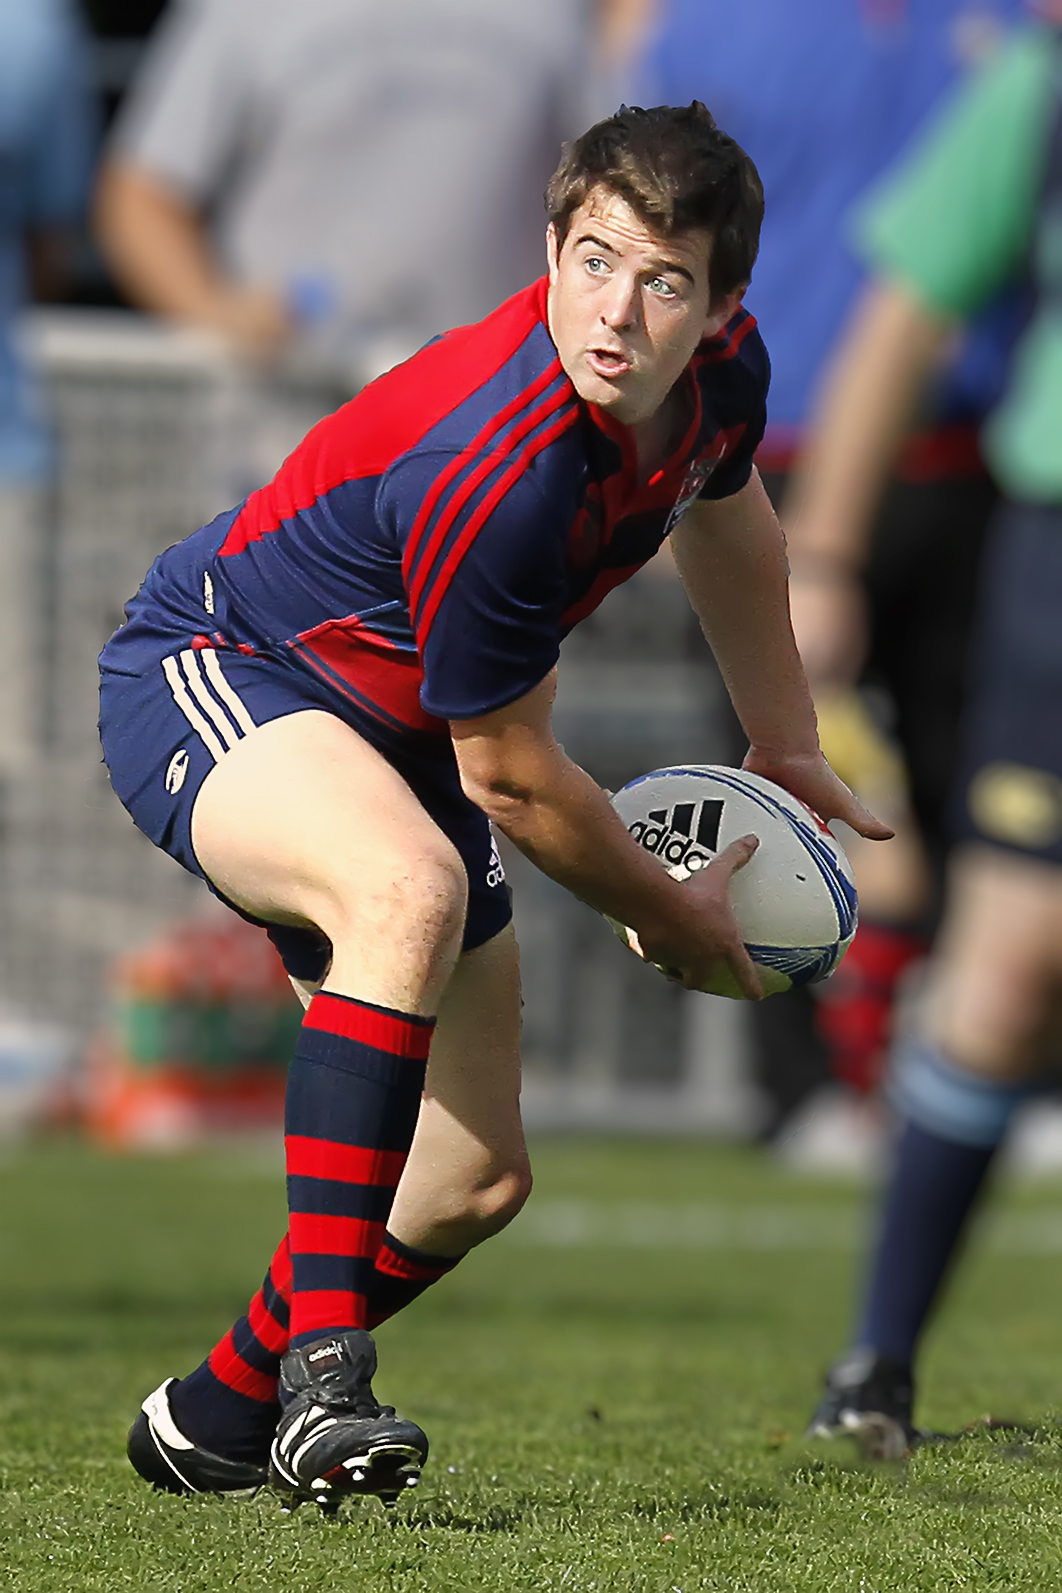 Although the Gaels were down 13-0 at the 18 minute mark, Saint Mary's turned up some fantastic rugby in Saturday's Gaels vs. Diablo Gaels game.